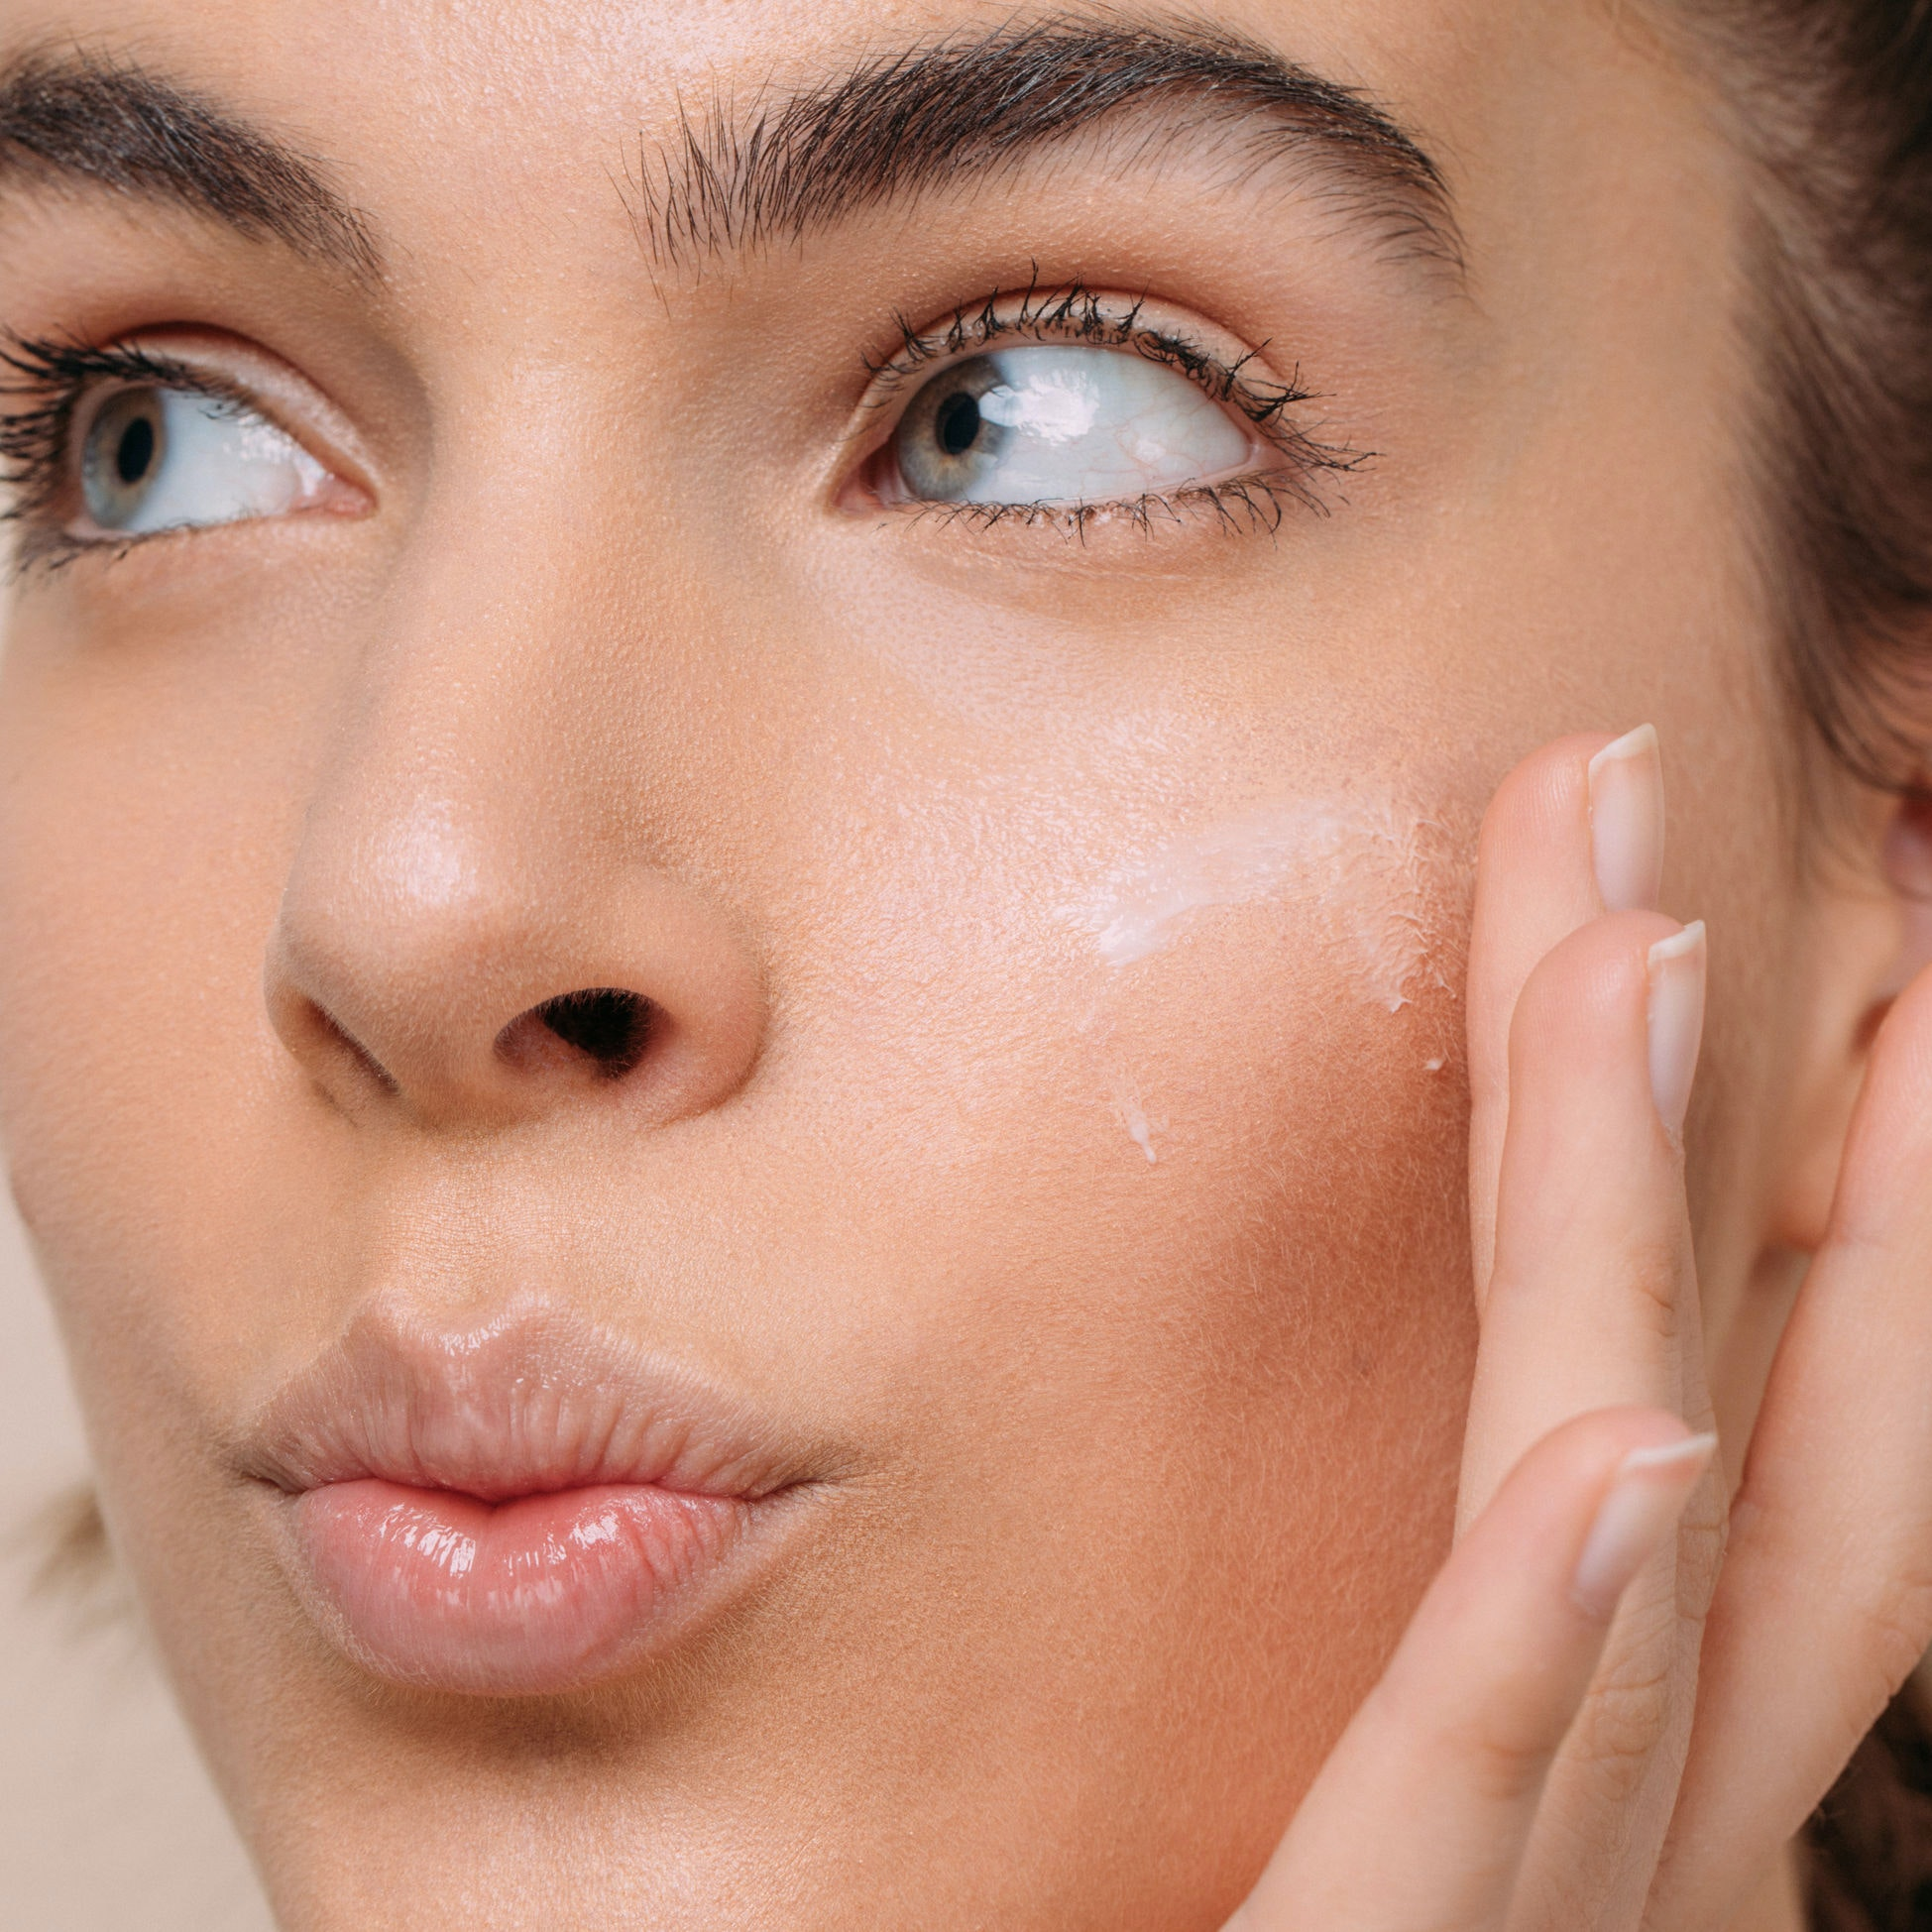 3 Superstar Acids That Can Actually Help Treat Adult Acne